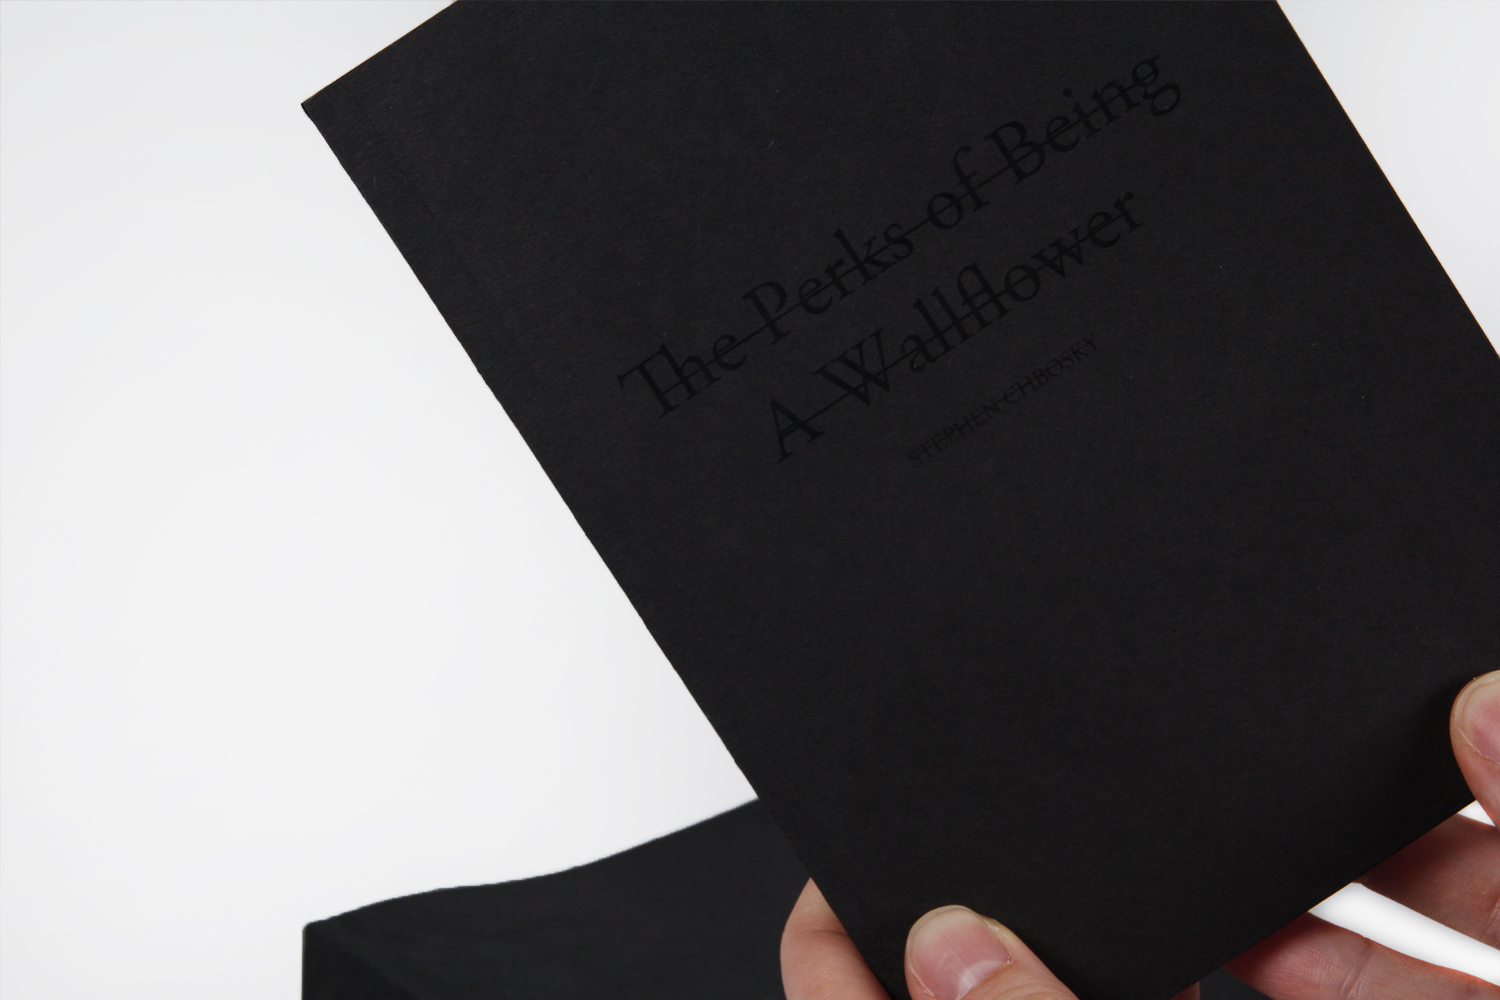 The covers all incorporate the use of black-on-black printing to obscure the text that is being presented.